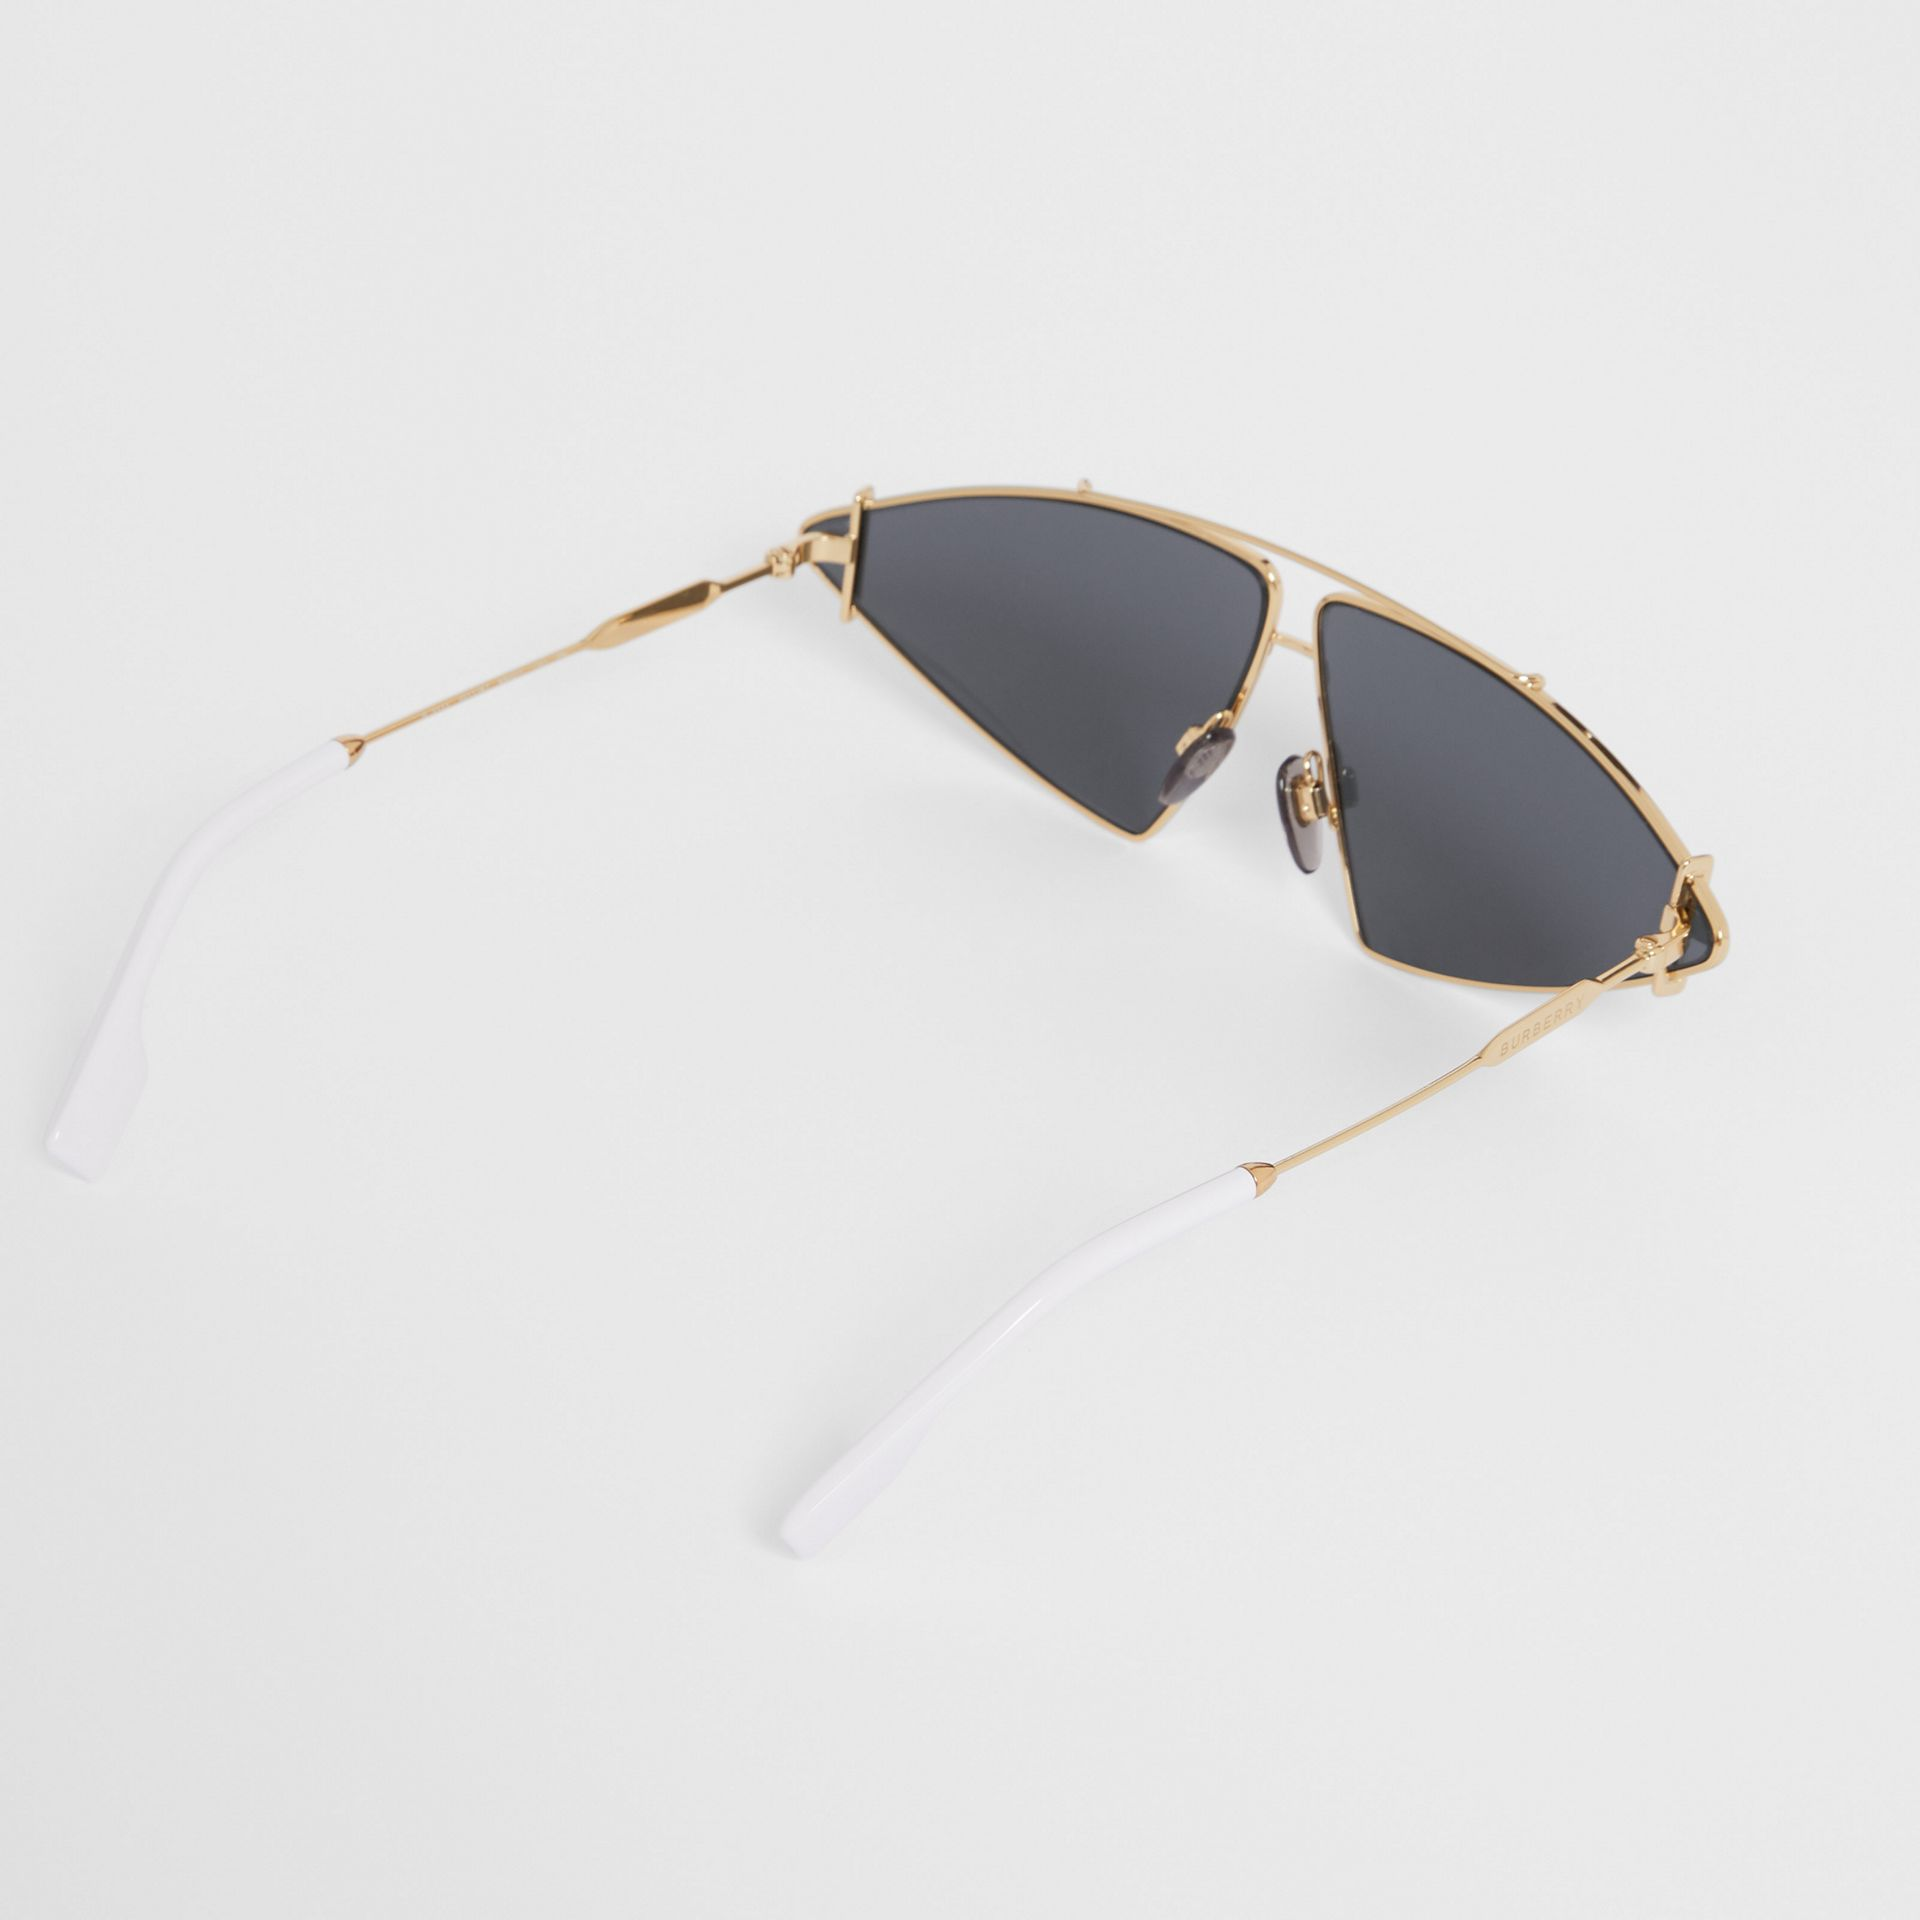 Gold-plated Triangular Frame Sunglasses in White - Women | Burberry Australia - gallery image 4